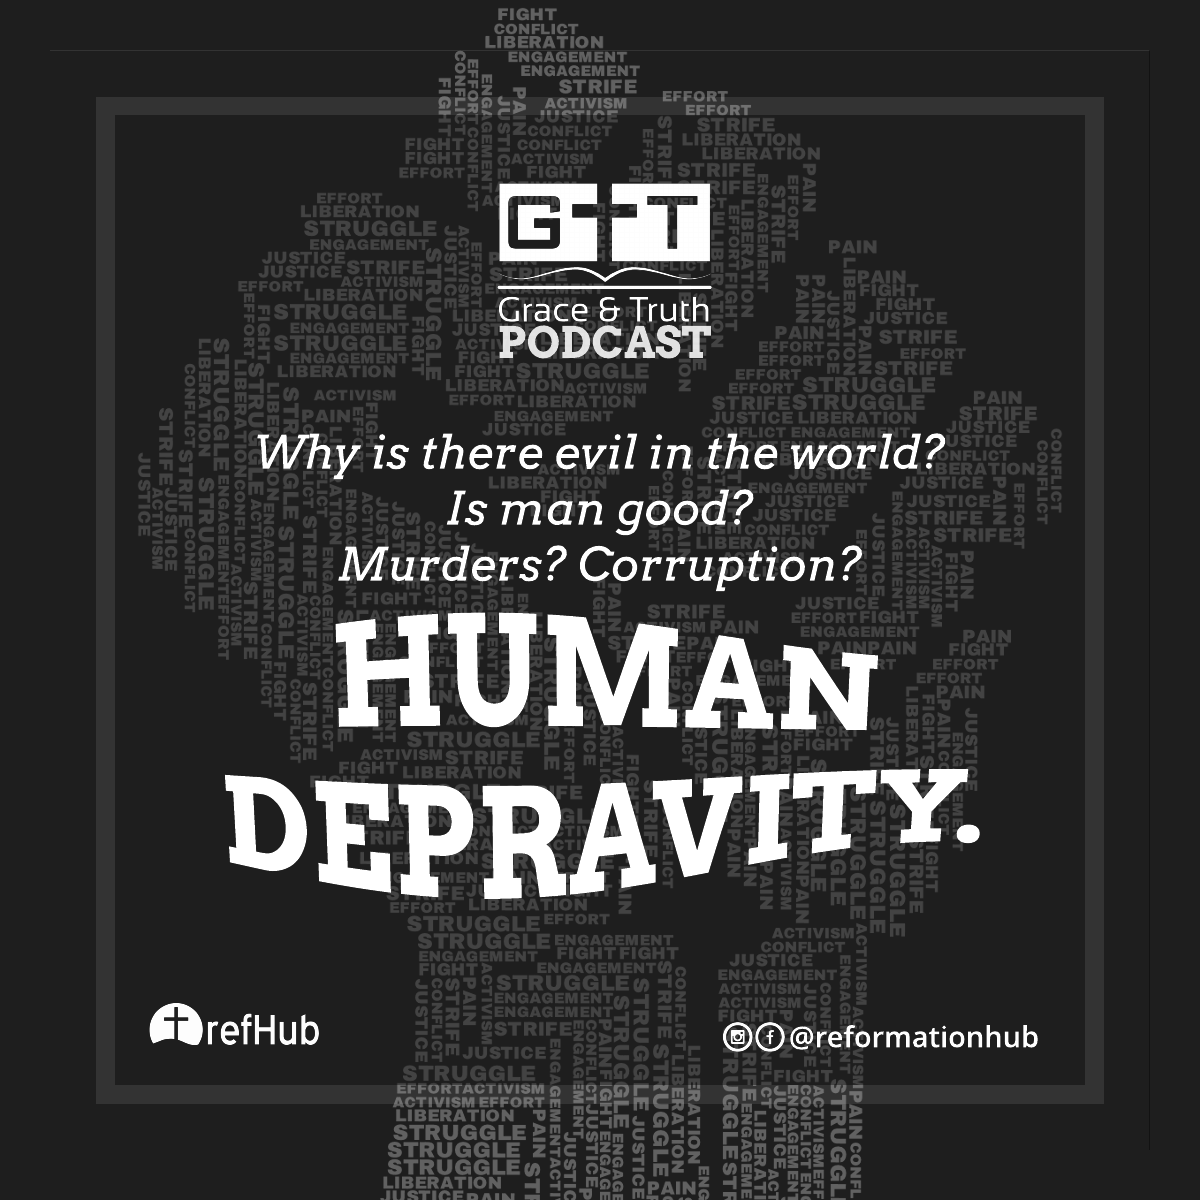 Episode 02: Human Depravity